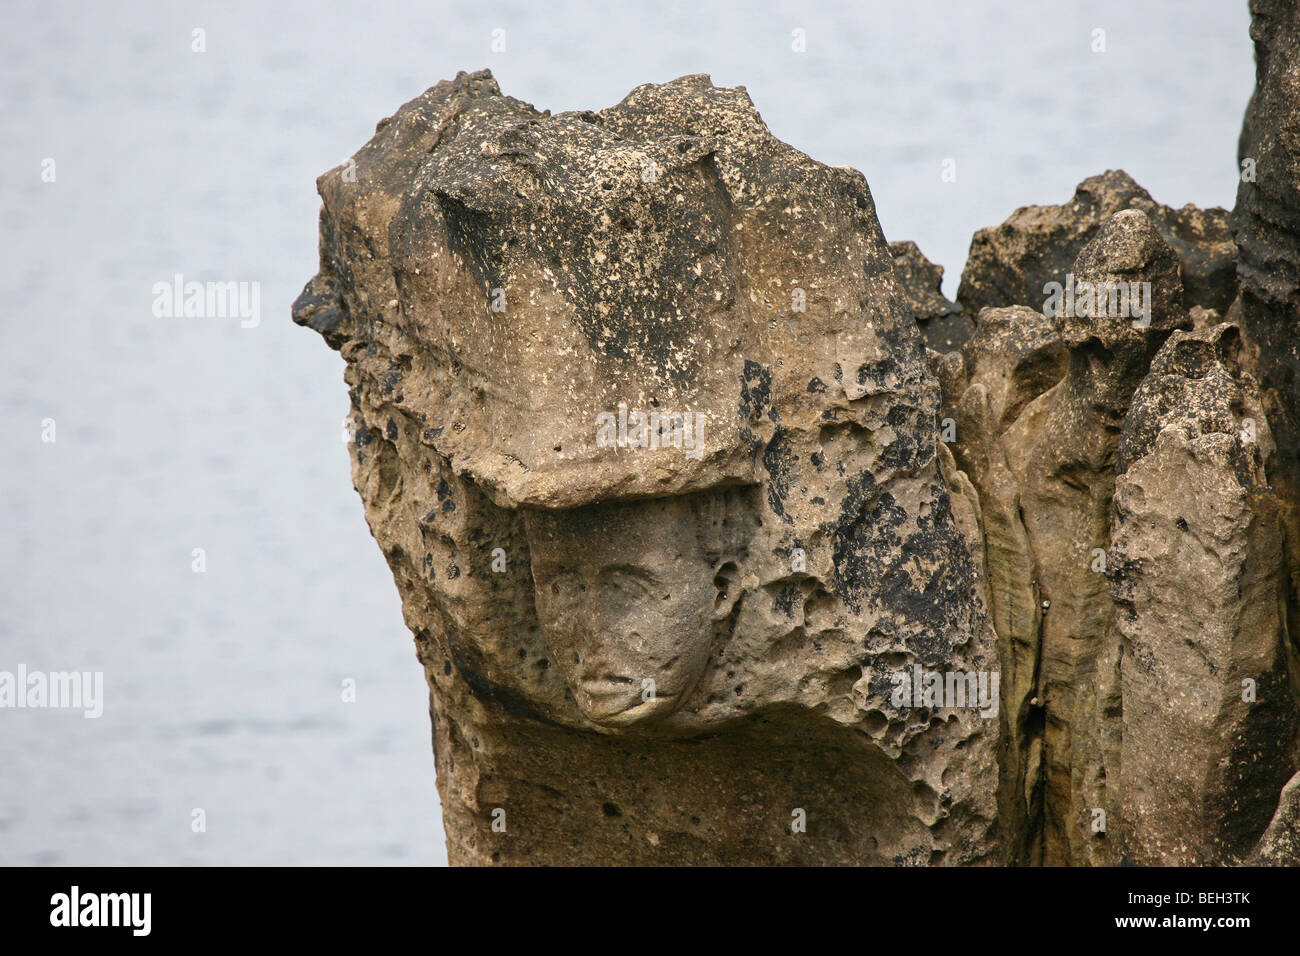 """A carving of """"the Priests head"""" near the Devils Churn at the Pans Rocks on Antrim coast. Northern Ireland. Stock Photo"""